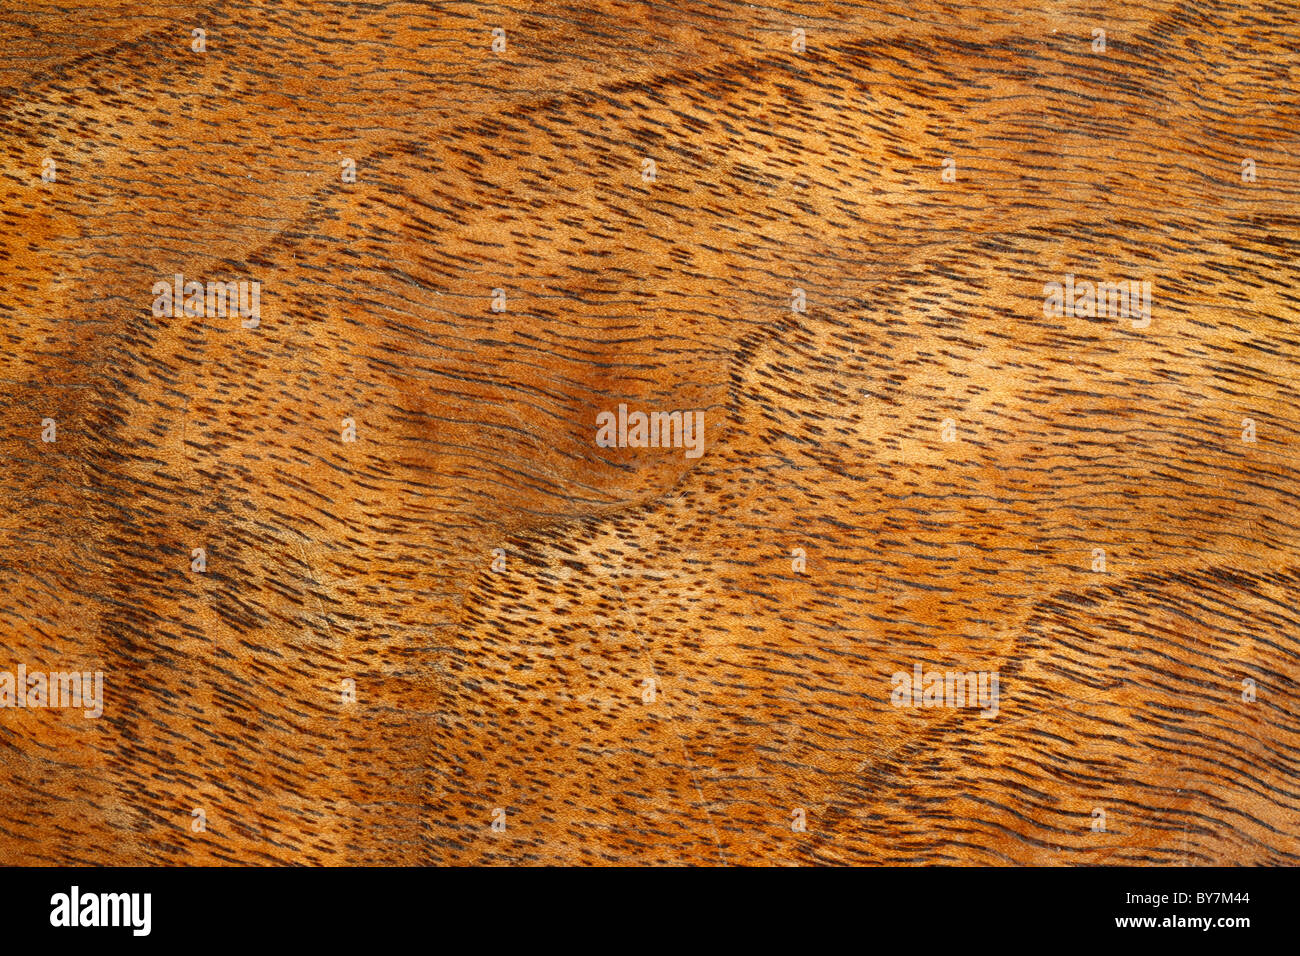 close up detail of antique table top showing wood grain detail stock